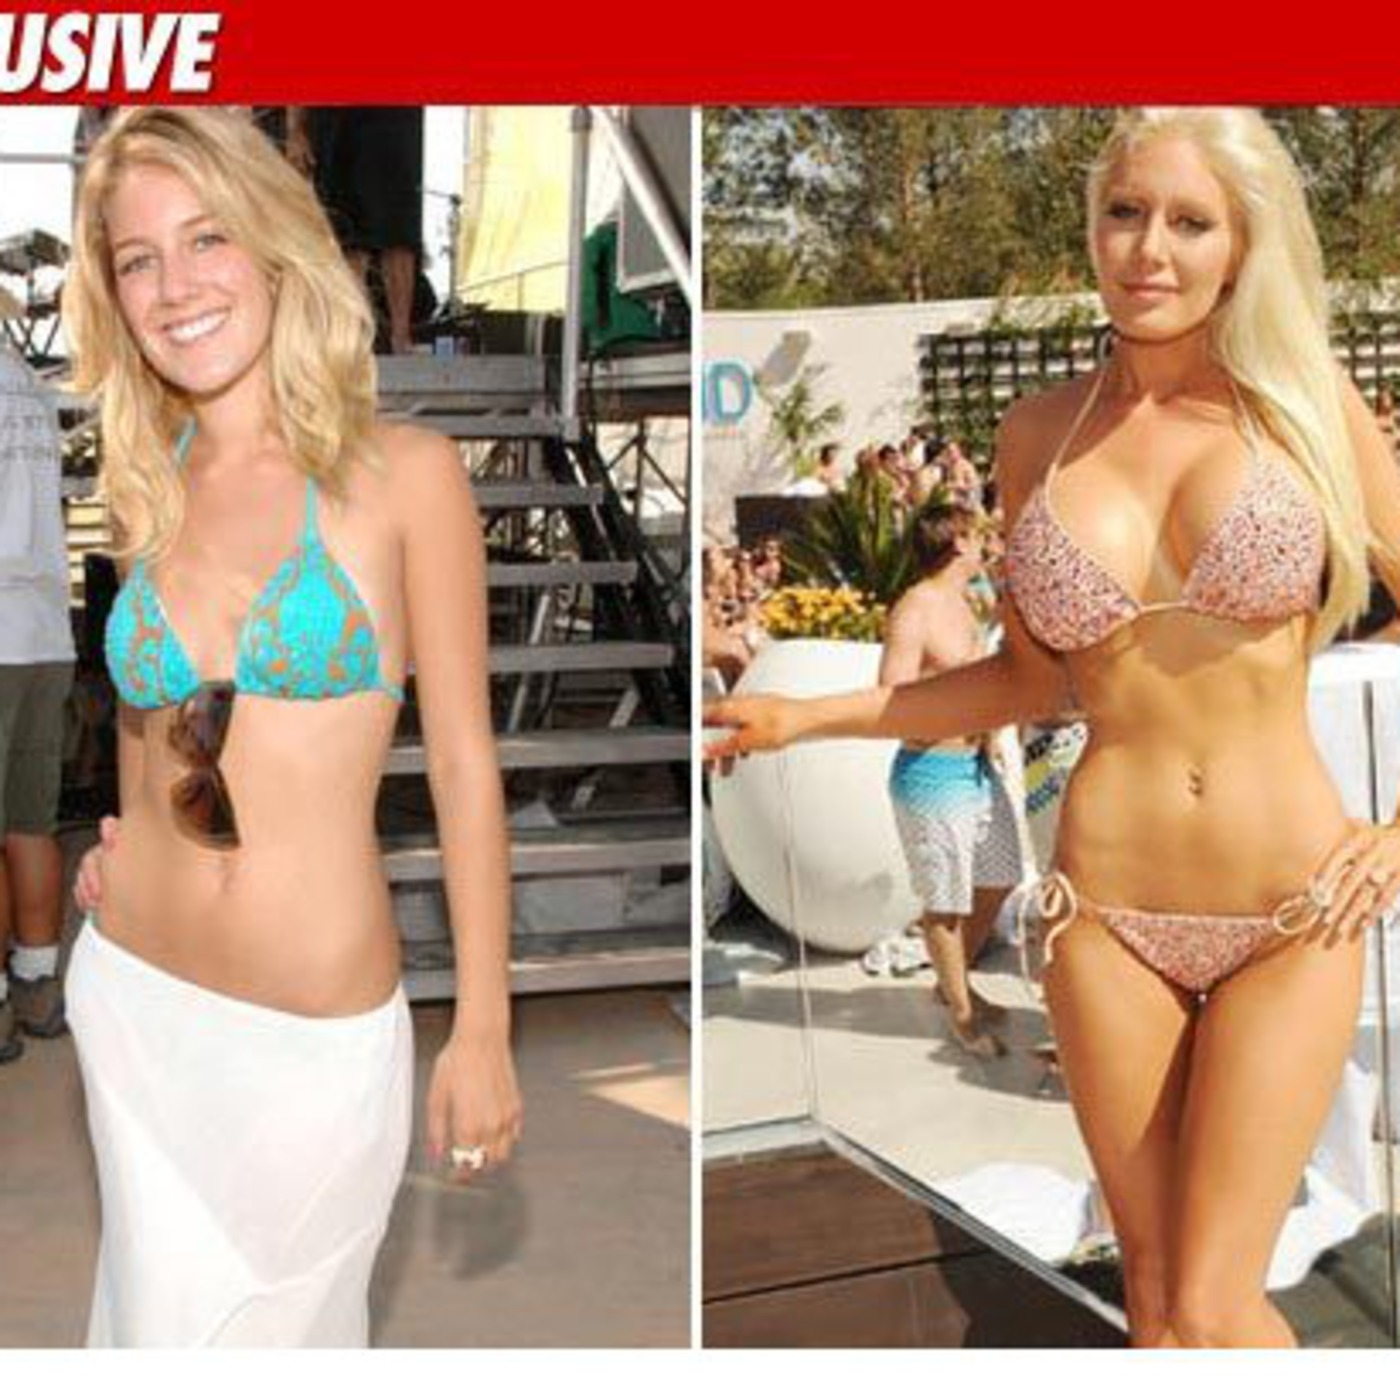 Sex Heidi Montag naked (69 foto and video), Sexy, Paparazzi, Boobs, butt 2006